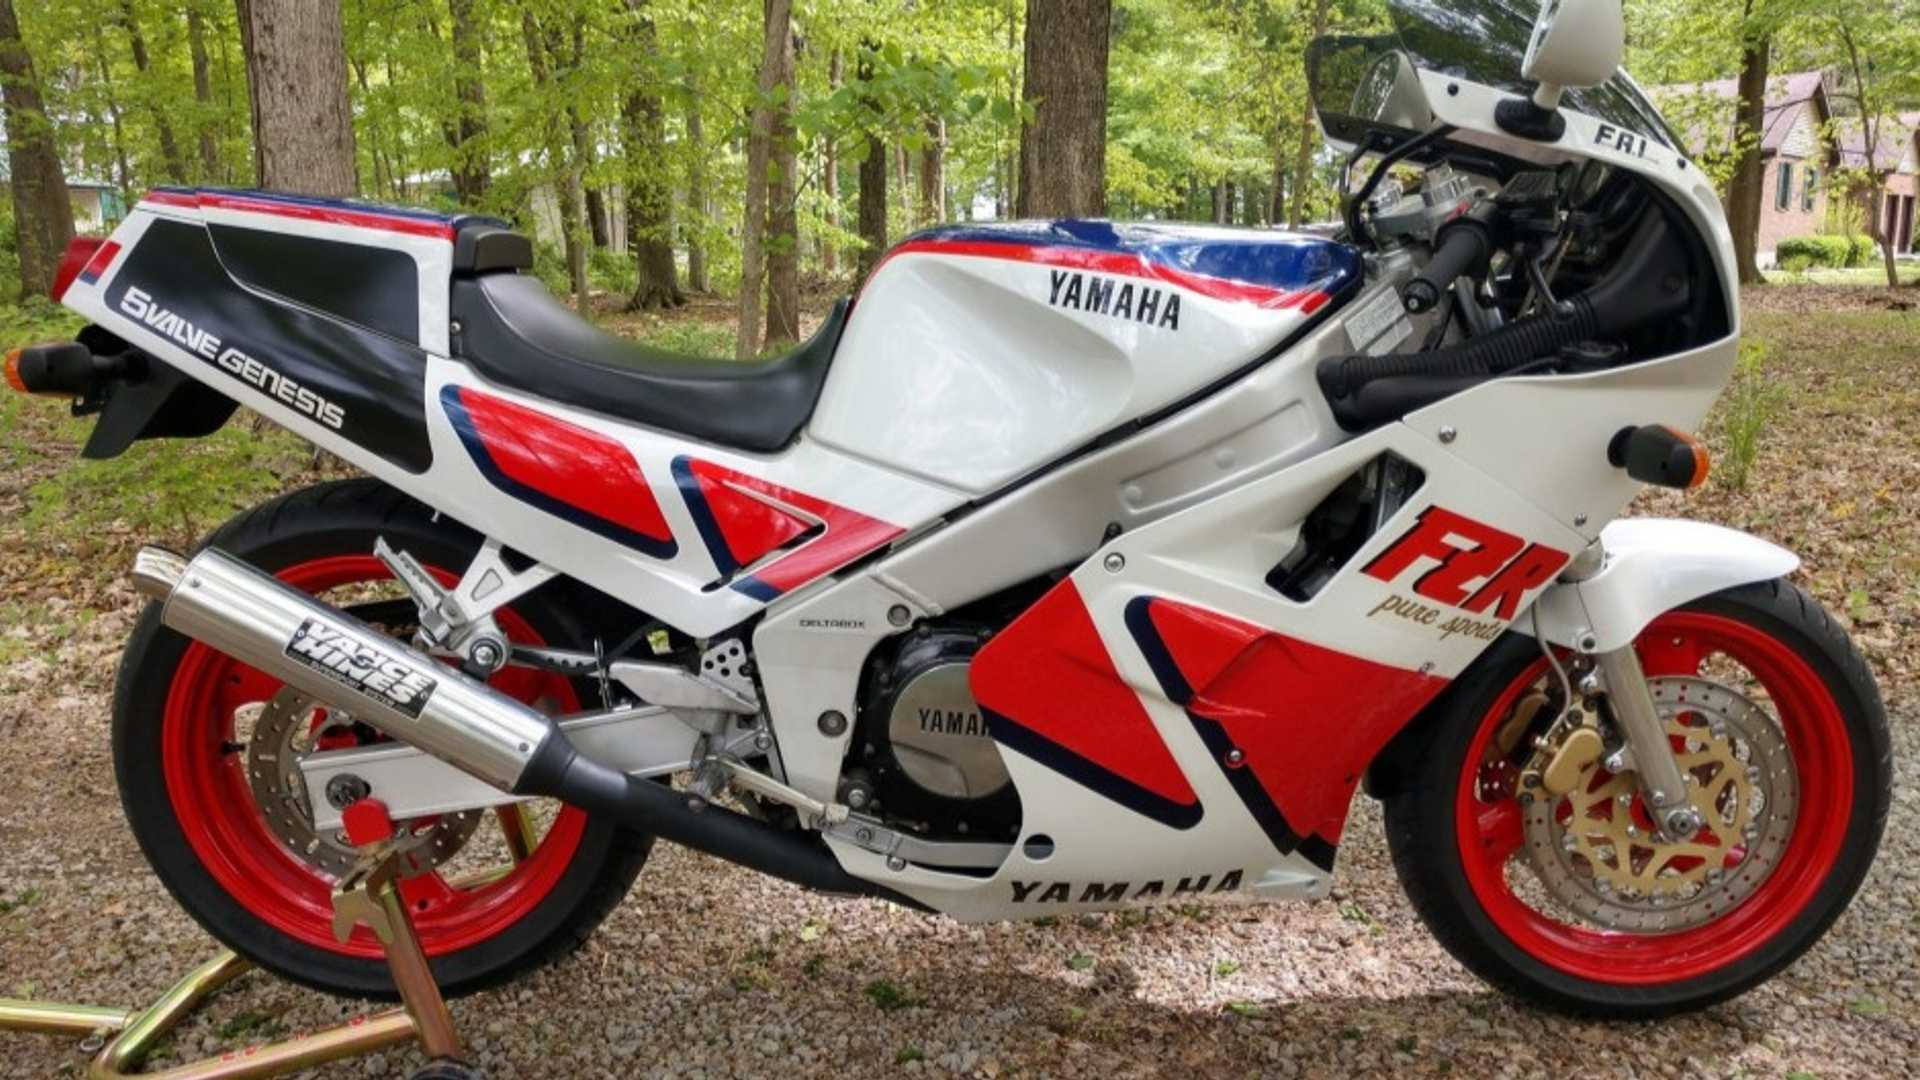 A One Of 200 Yamaha FZR750RT Homologation Unit Is For Sale